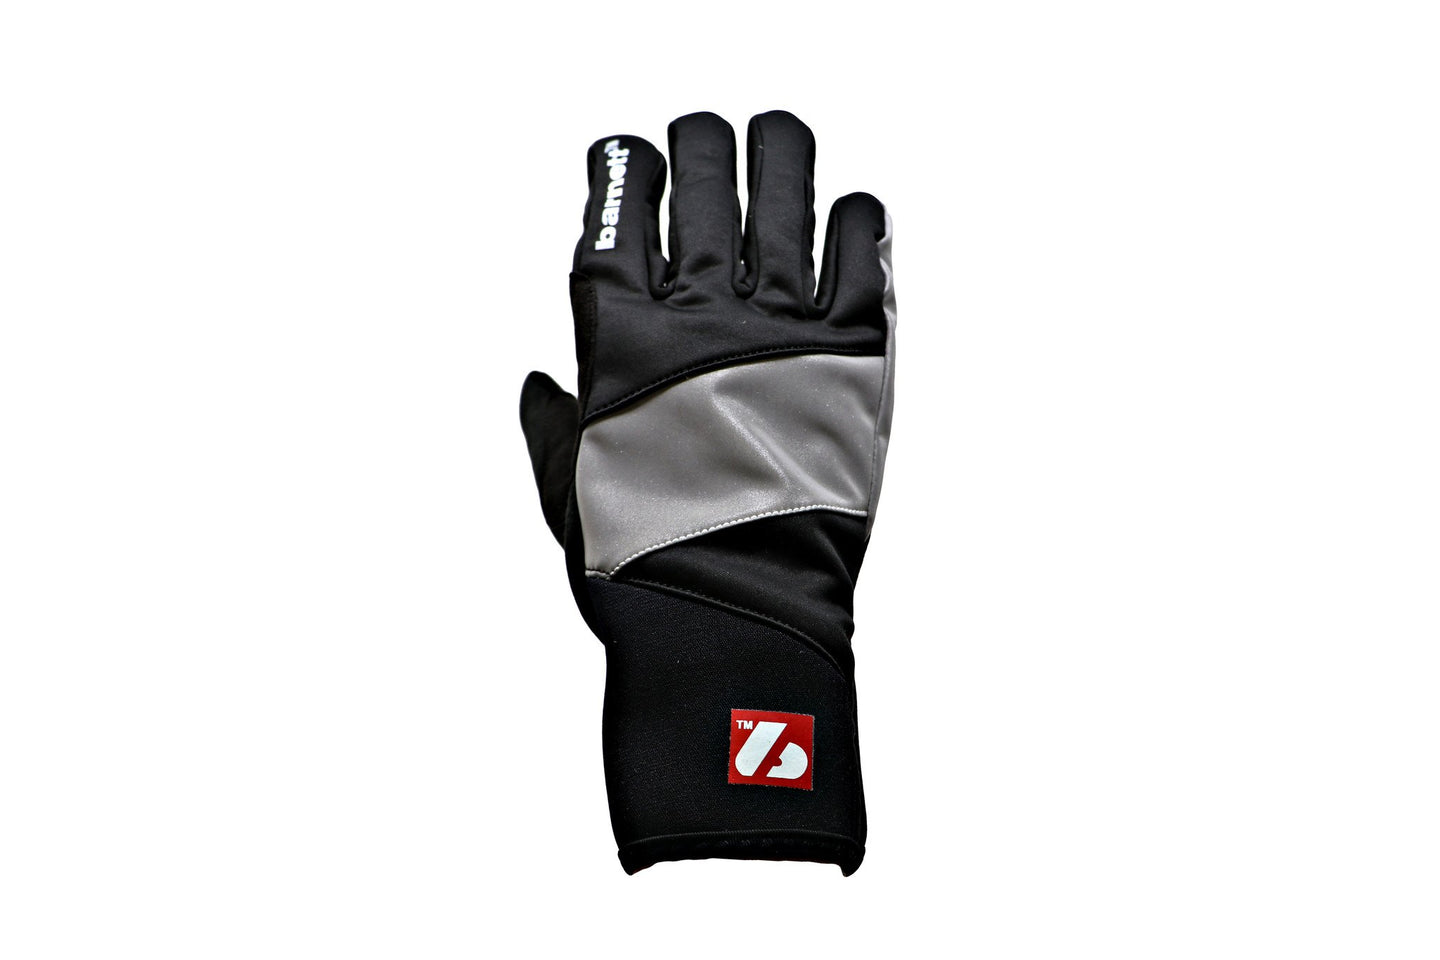 NBG-16 xc elite cross country ski winter gloves -20°c